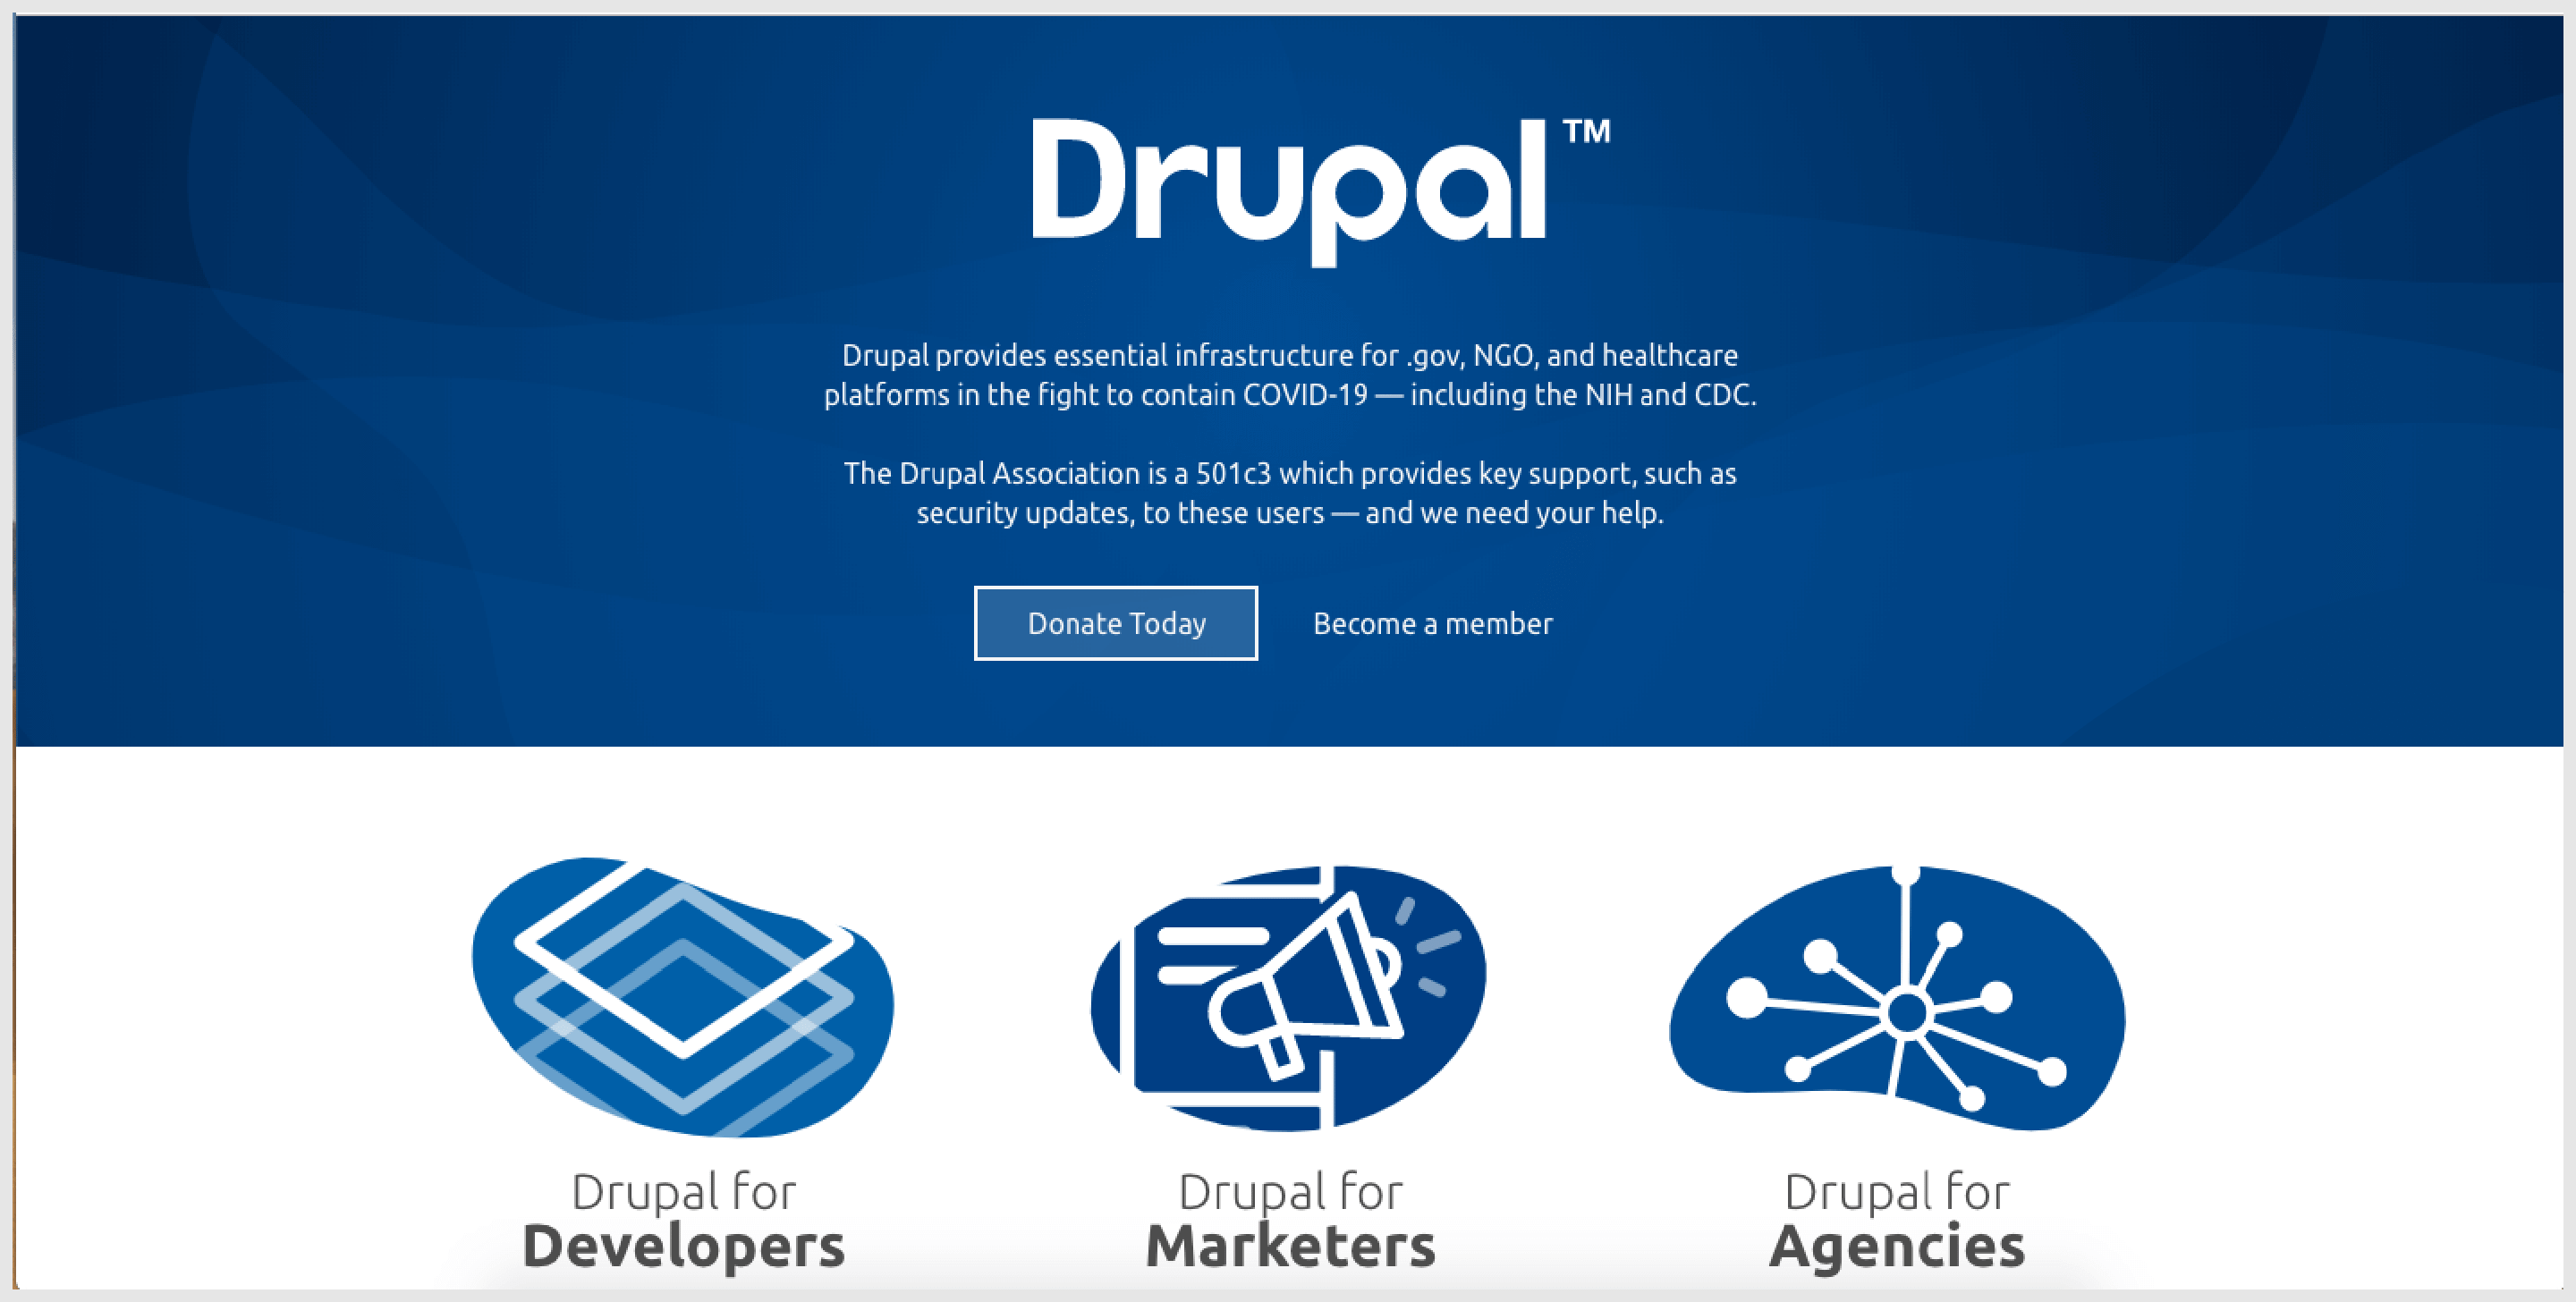 Drupal is clearly one of the best content management tools that the market offers.